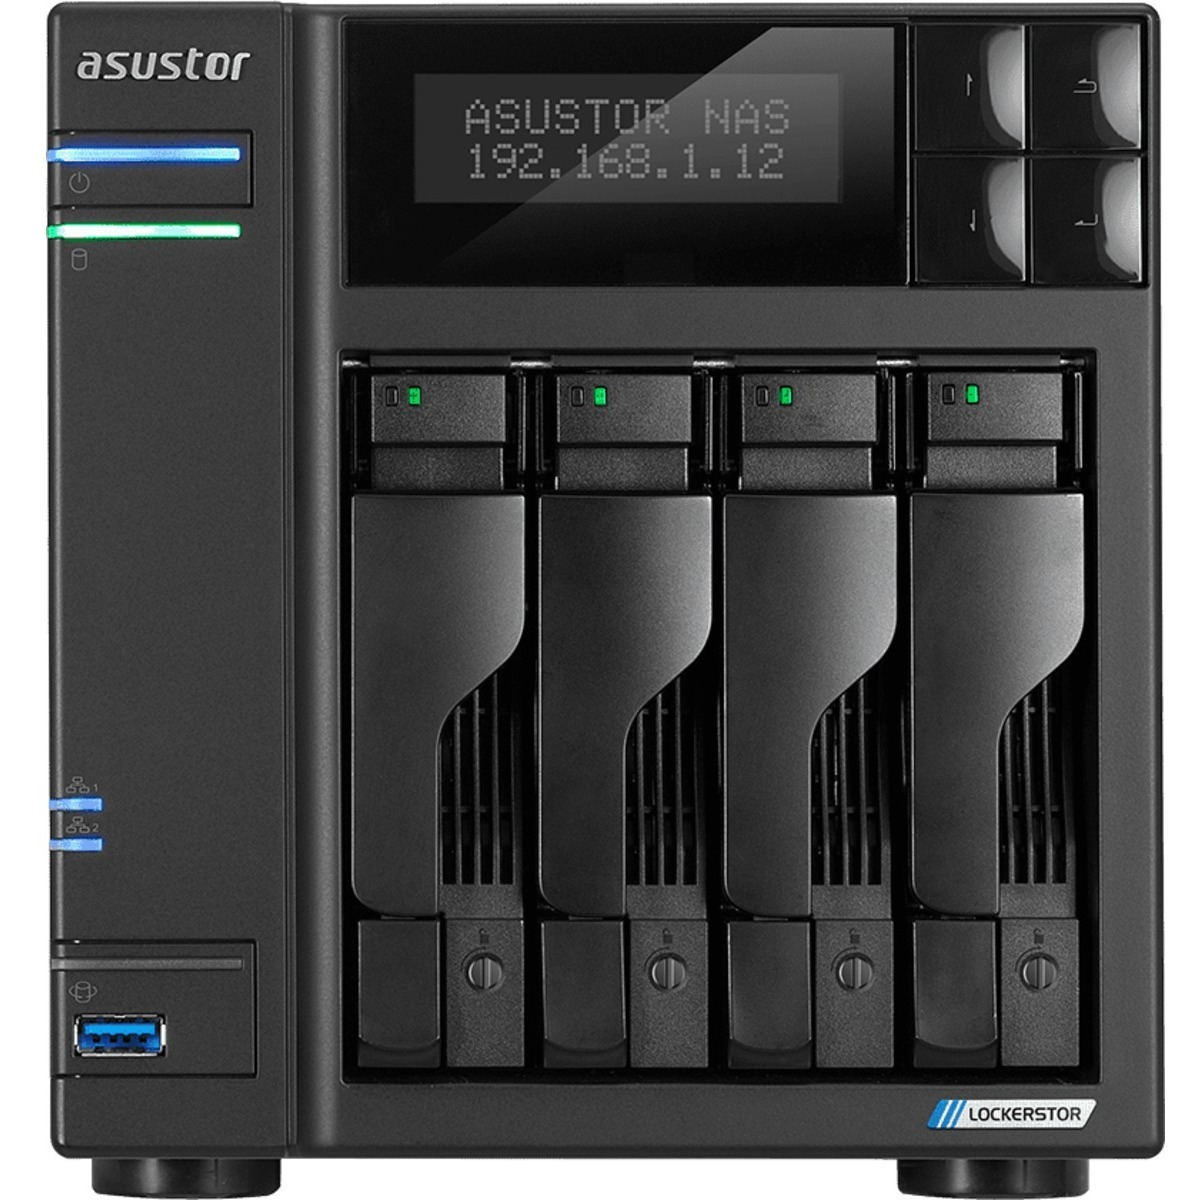 buy $2156 ASUSTOR AS6604T Lockerstor 4 42tb Desktop NAS - Network Attached Storage Device 3x14000gb Western Digital Red Plus WD140EFFX 3.5 7200rpm SATA 6Gb/s HDD NAS Class Drives Installed - Burn-In Tested - ON SALE - FREE RAM UPGRADE - nas headquarters buy network attached storage server device das new raid-5 free shipping usa black friday cyber monday week month christmas holiday sale AS6604T Lockerstor 4